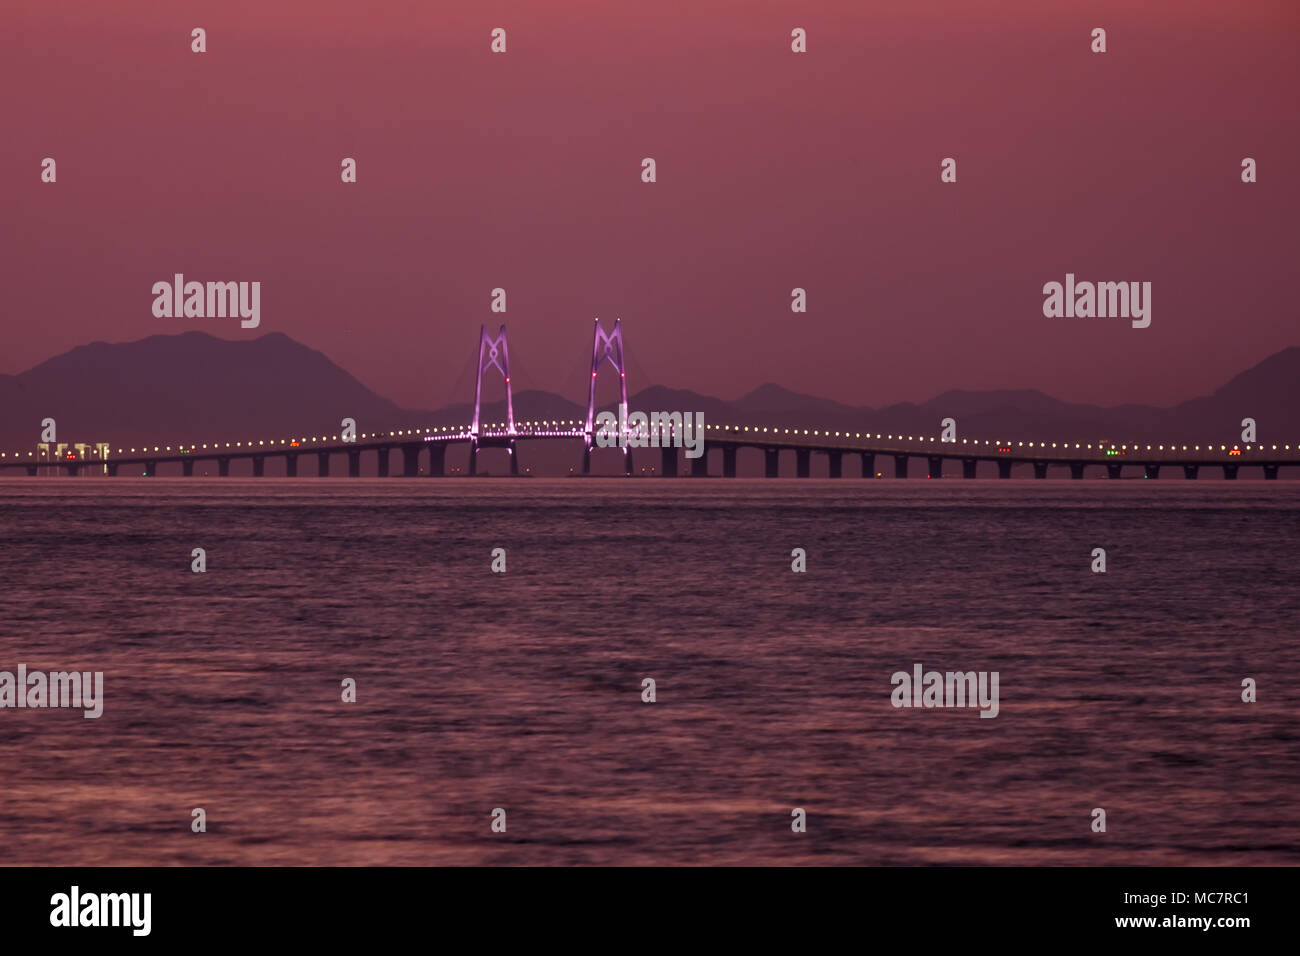 Hong Kong - Zhuhai - Macau bridge is the longest sea link in the world with underwater tunnel. Hong Kong part of bridge. Sunset sky on background. - Stock Image